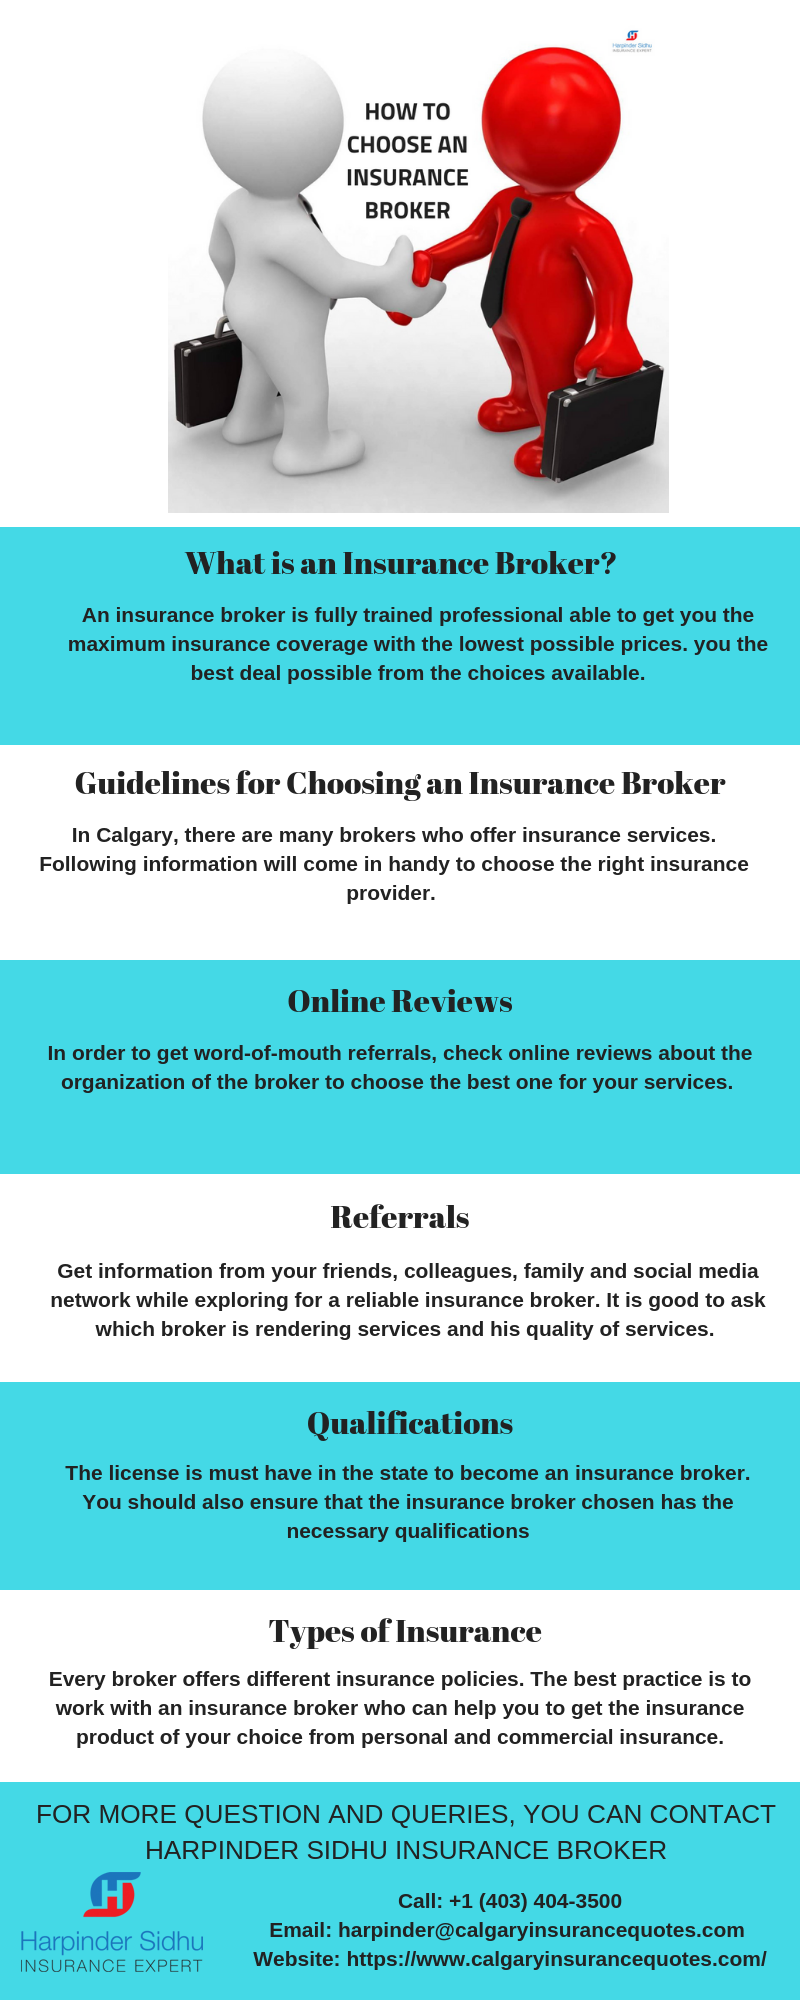 An Insurance Broker Is Fully Trained Professional Able To Get You